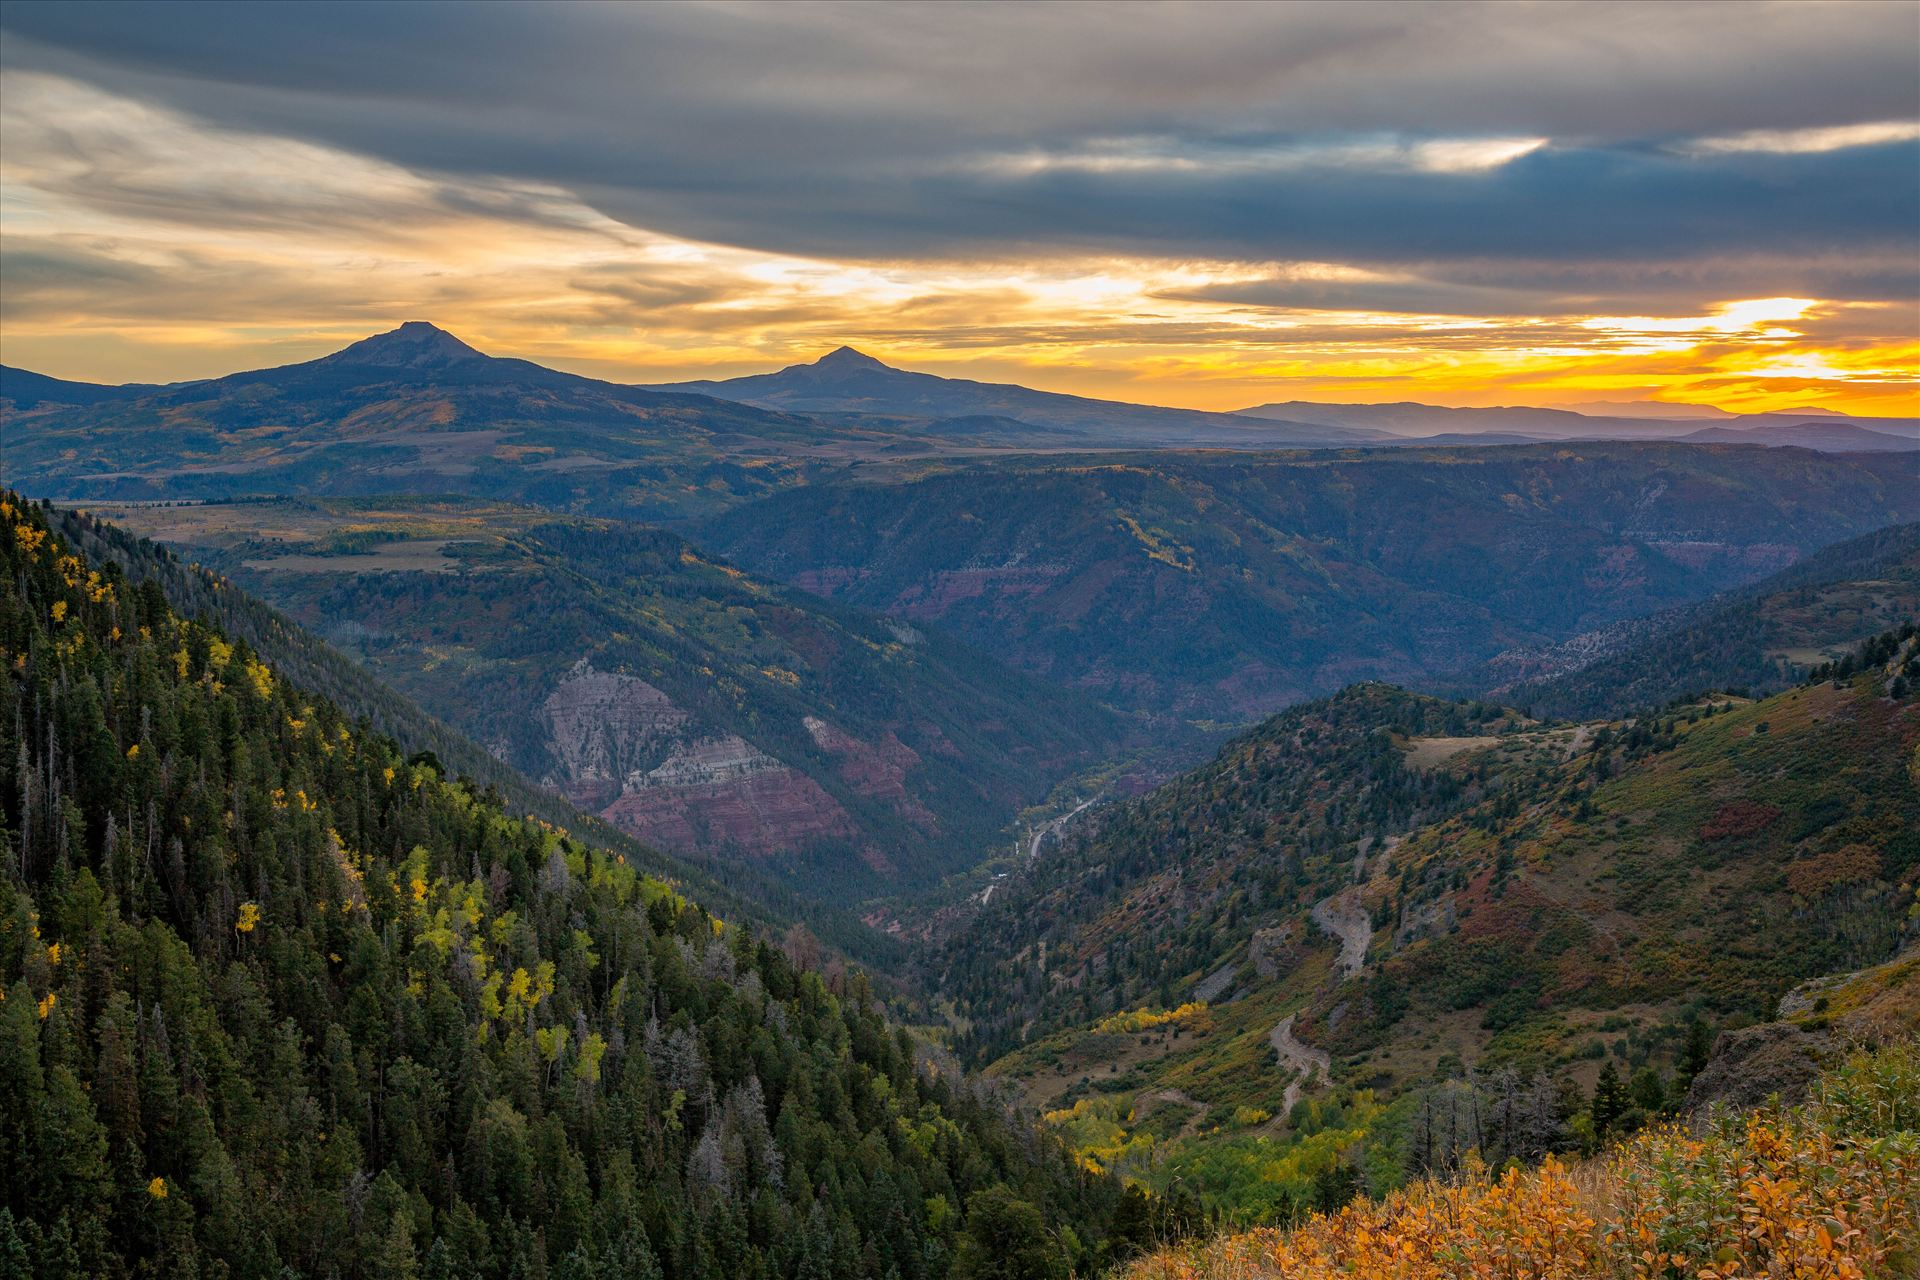 Last Dollar Road Sunset 2 - The sun has almost faded on a quiet, secluded spot from Last Dollar Road, outside of Telluride, Colorado in the fall. by Scott Smith Photos